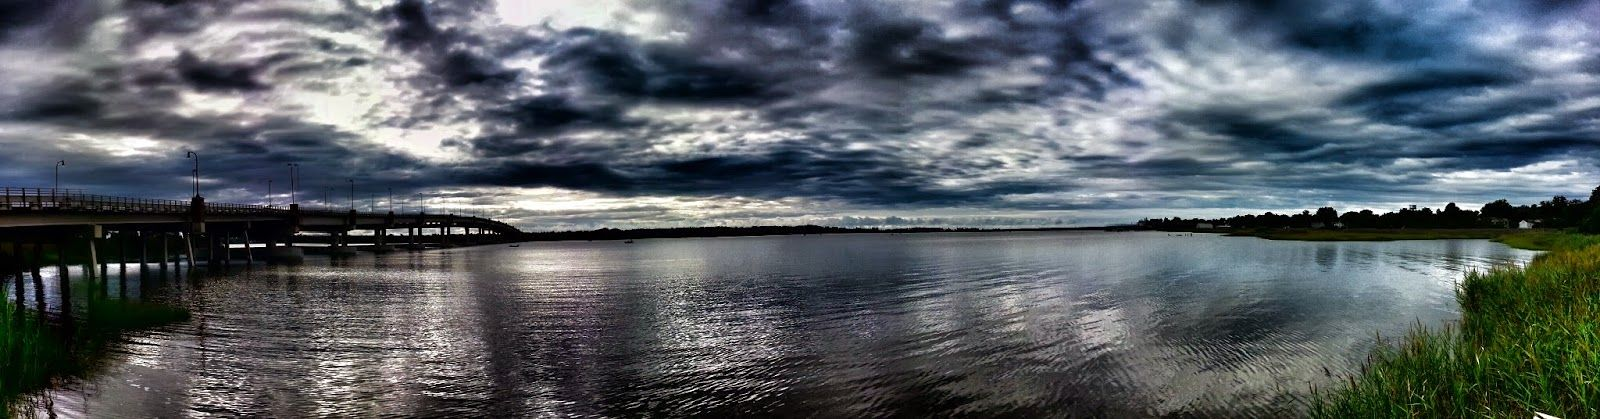 Blackstone Imaging: A moody panorama of the Mattaponi River. You can j...